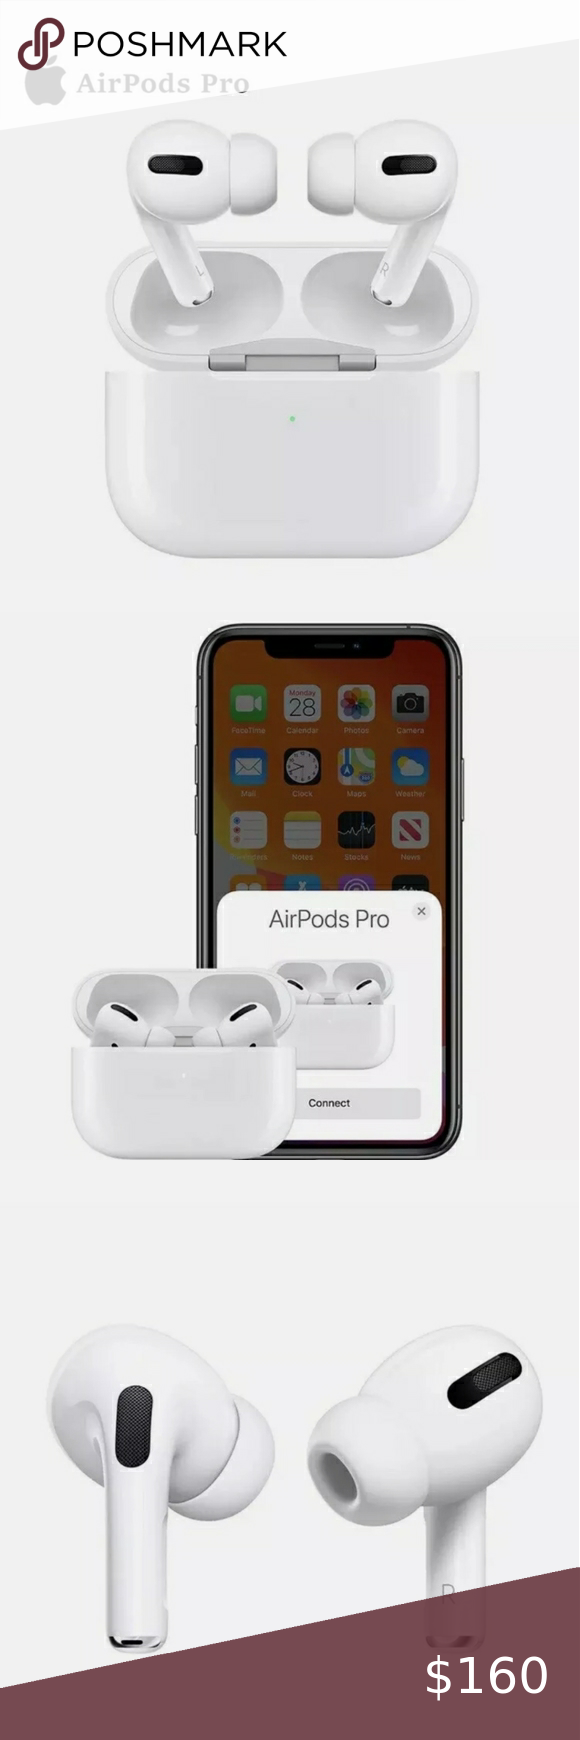 Apple Airpods Pro 3rd Generation In 2021 Iphone 7 Phone Cases New Apple Watch Leather Case